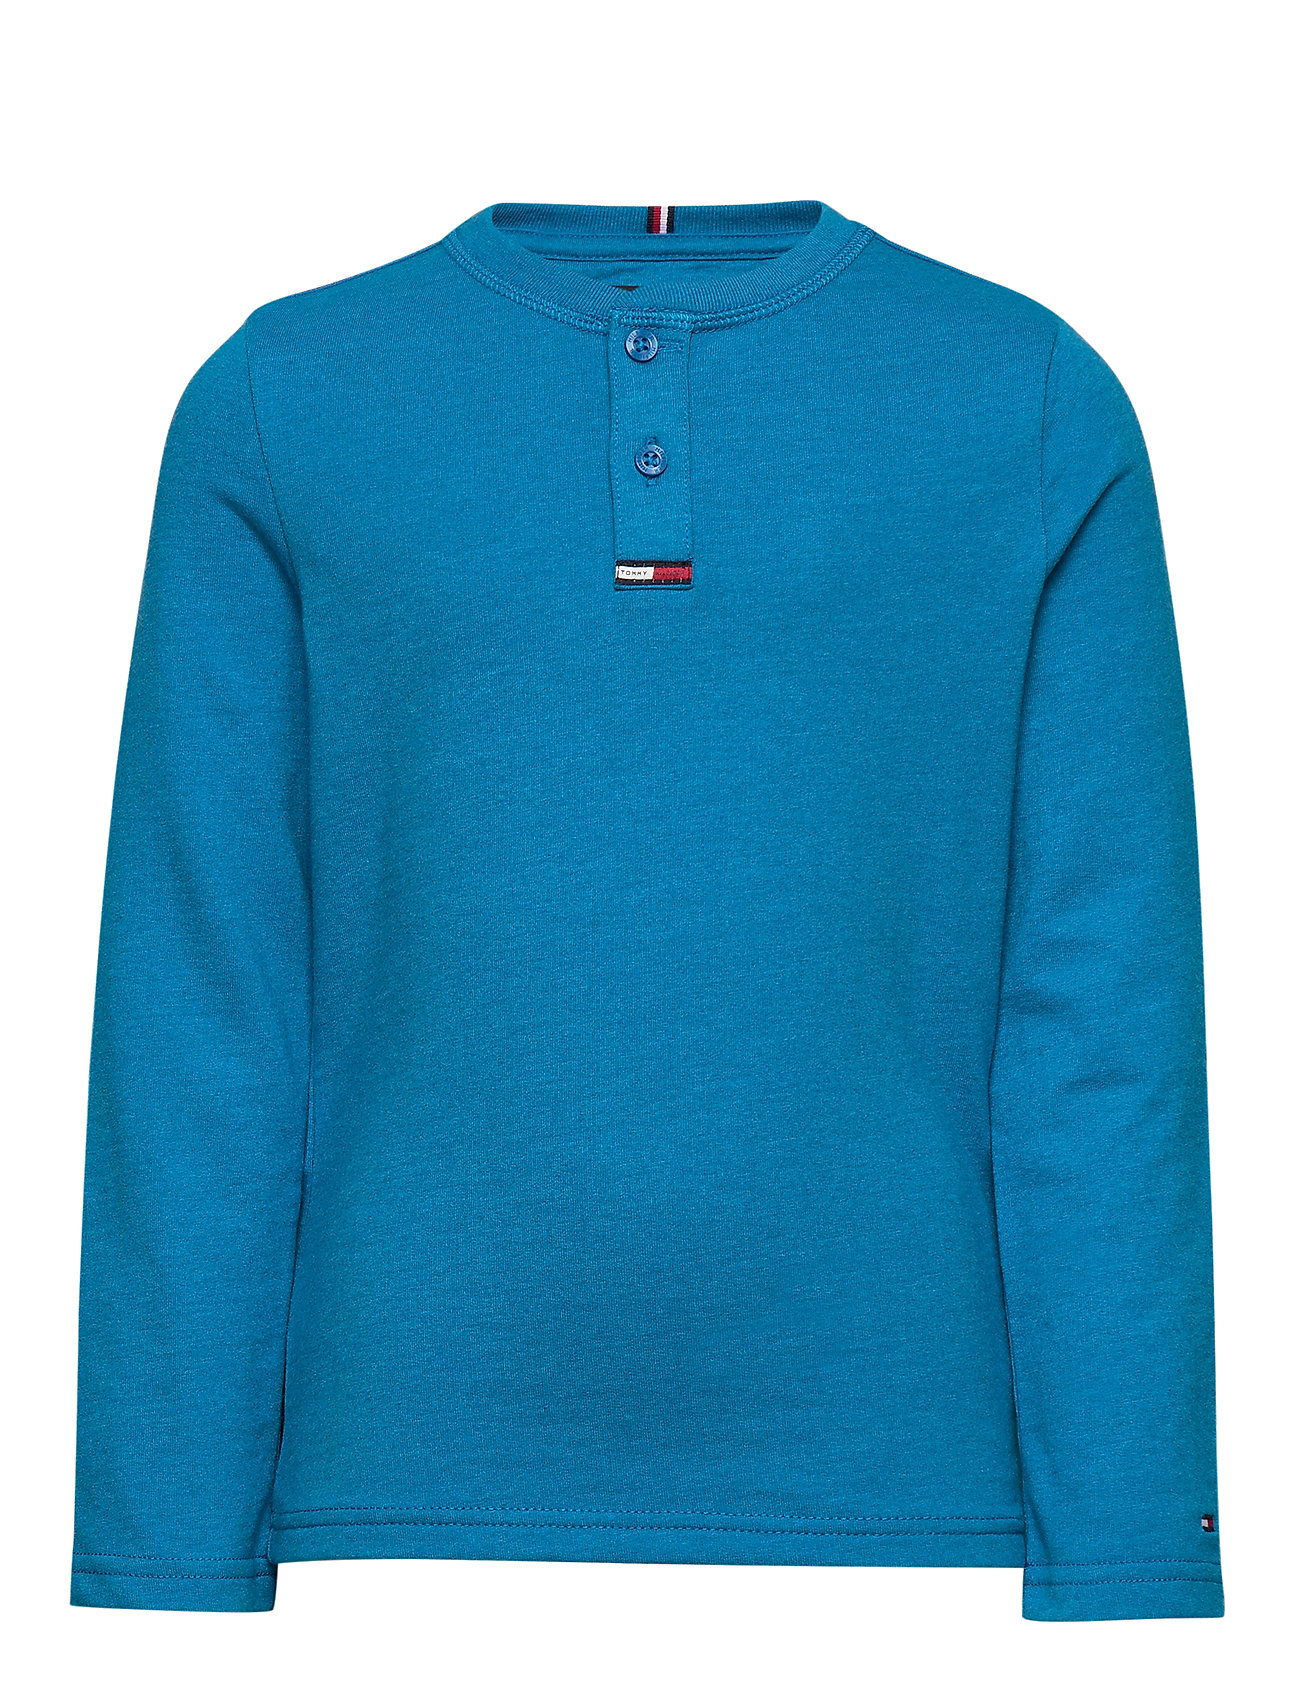 Tommy Hilfiger WAFFLE HENLEY TEE L/ - IMPERIAL BLUE